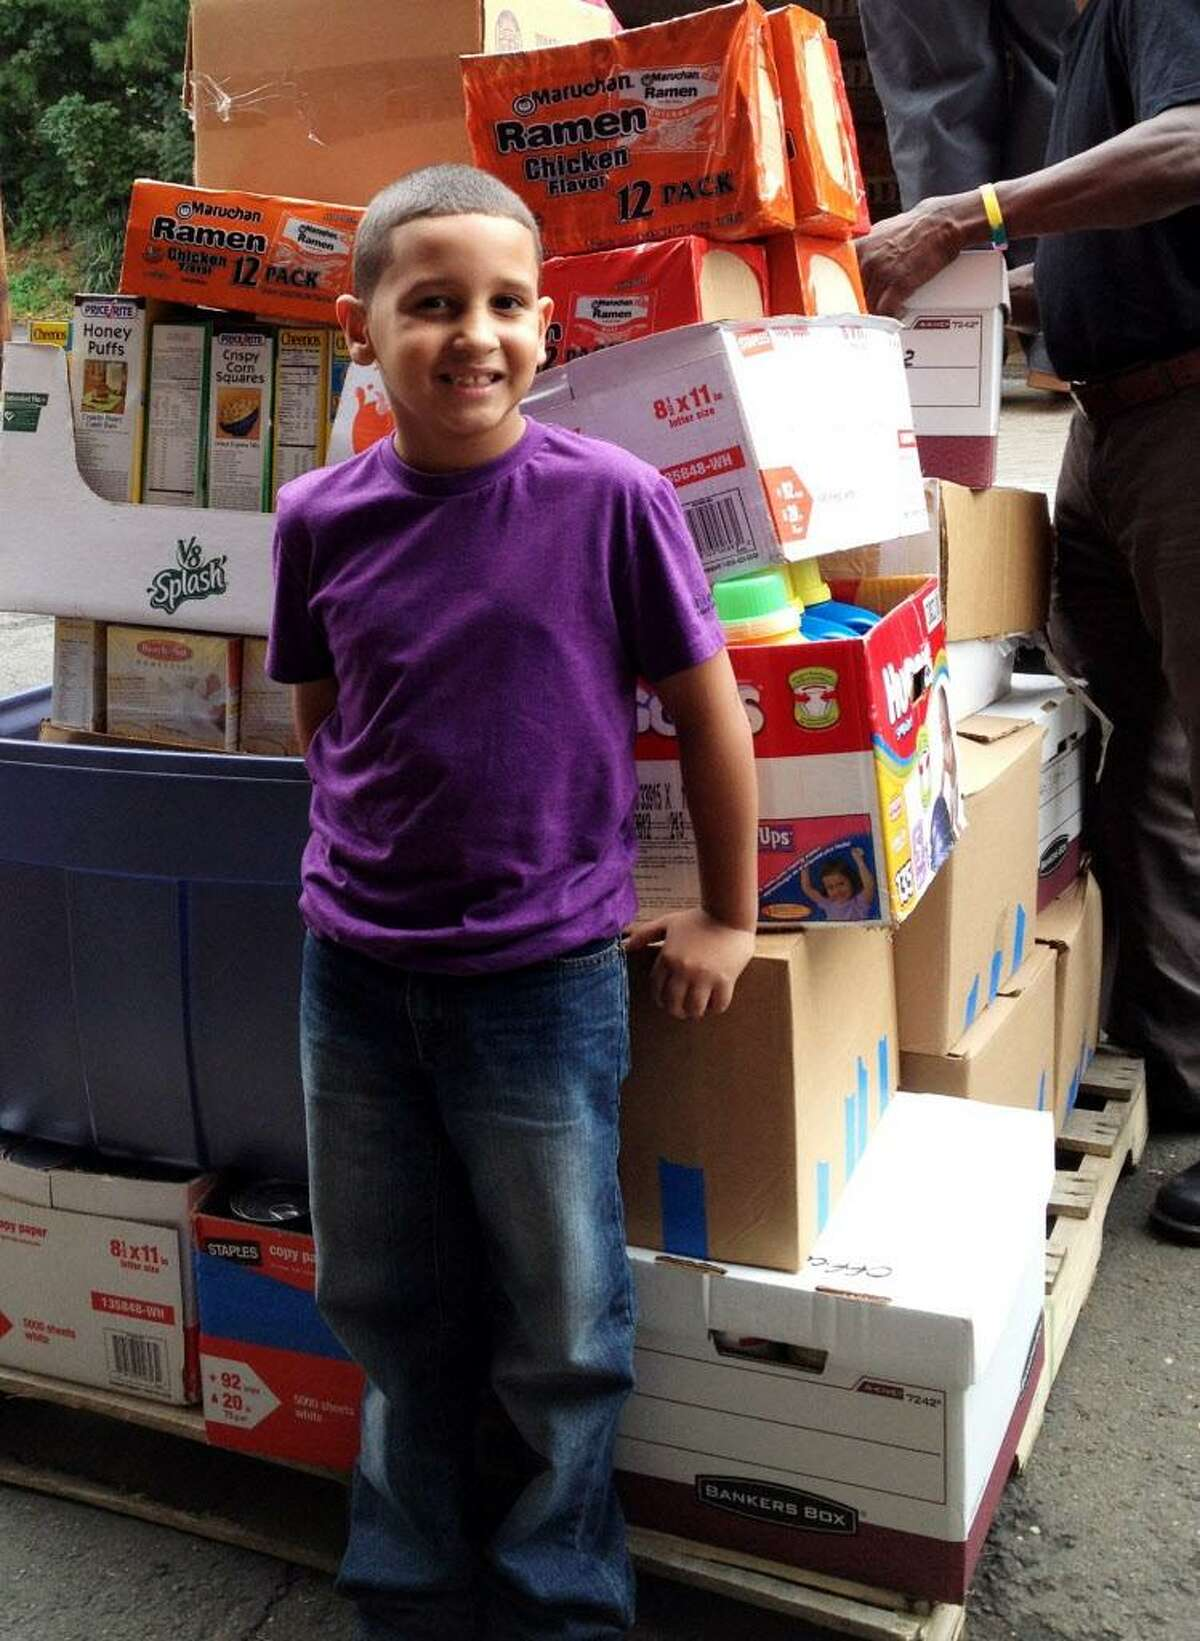 7-year-old Jeremy Rosa of Bridgeport held a food drive that collected 1,053 items, weighing a whopping 997 pounds, the equivalent of 830 meals. The collected food was donated to the Connecticut Food Bank Warehouse in Fairfield, Conn.